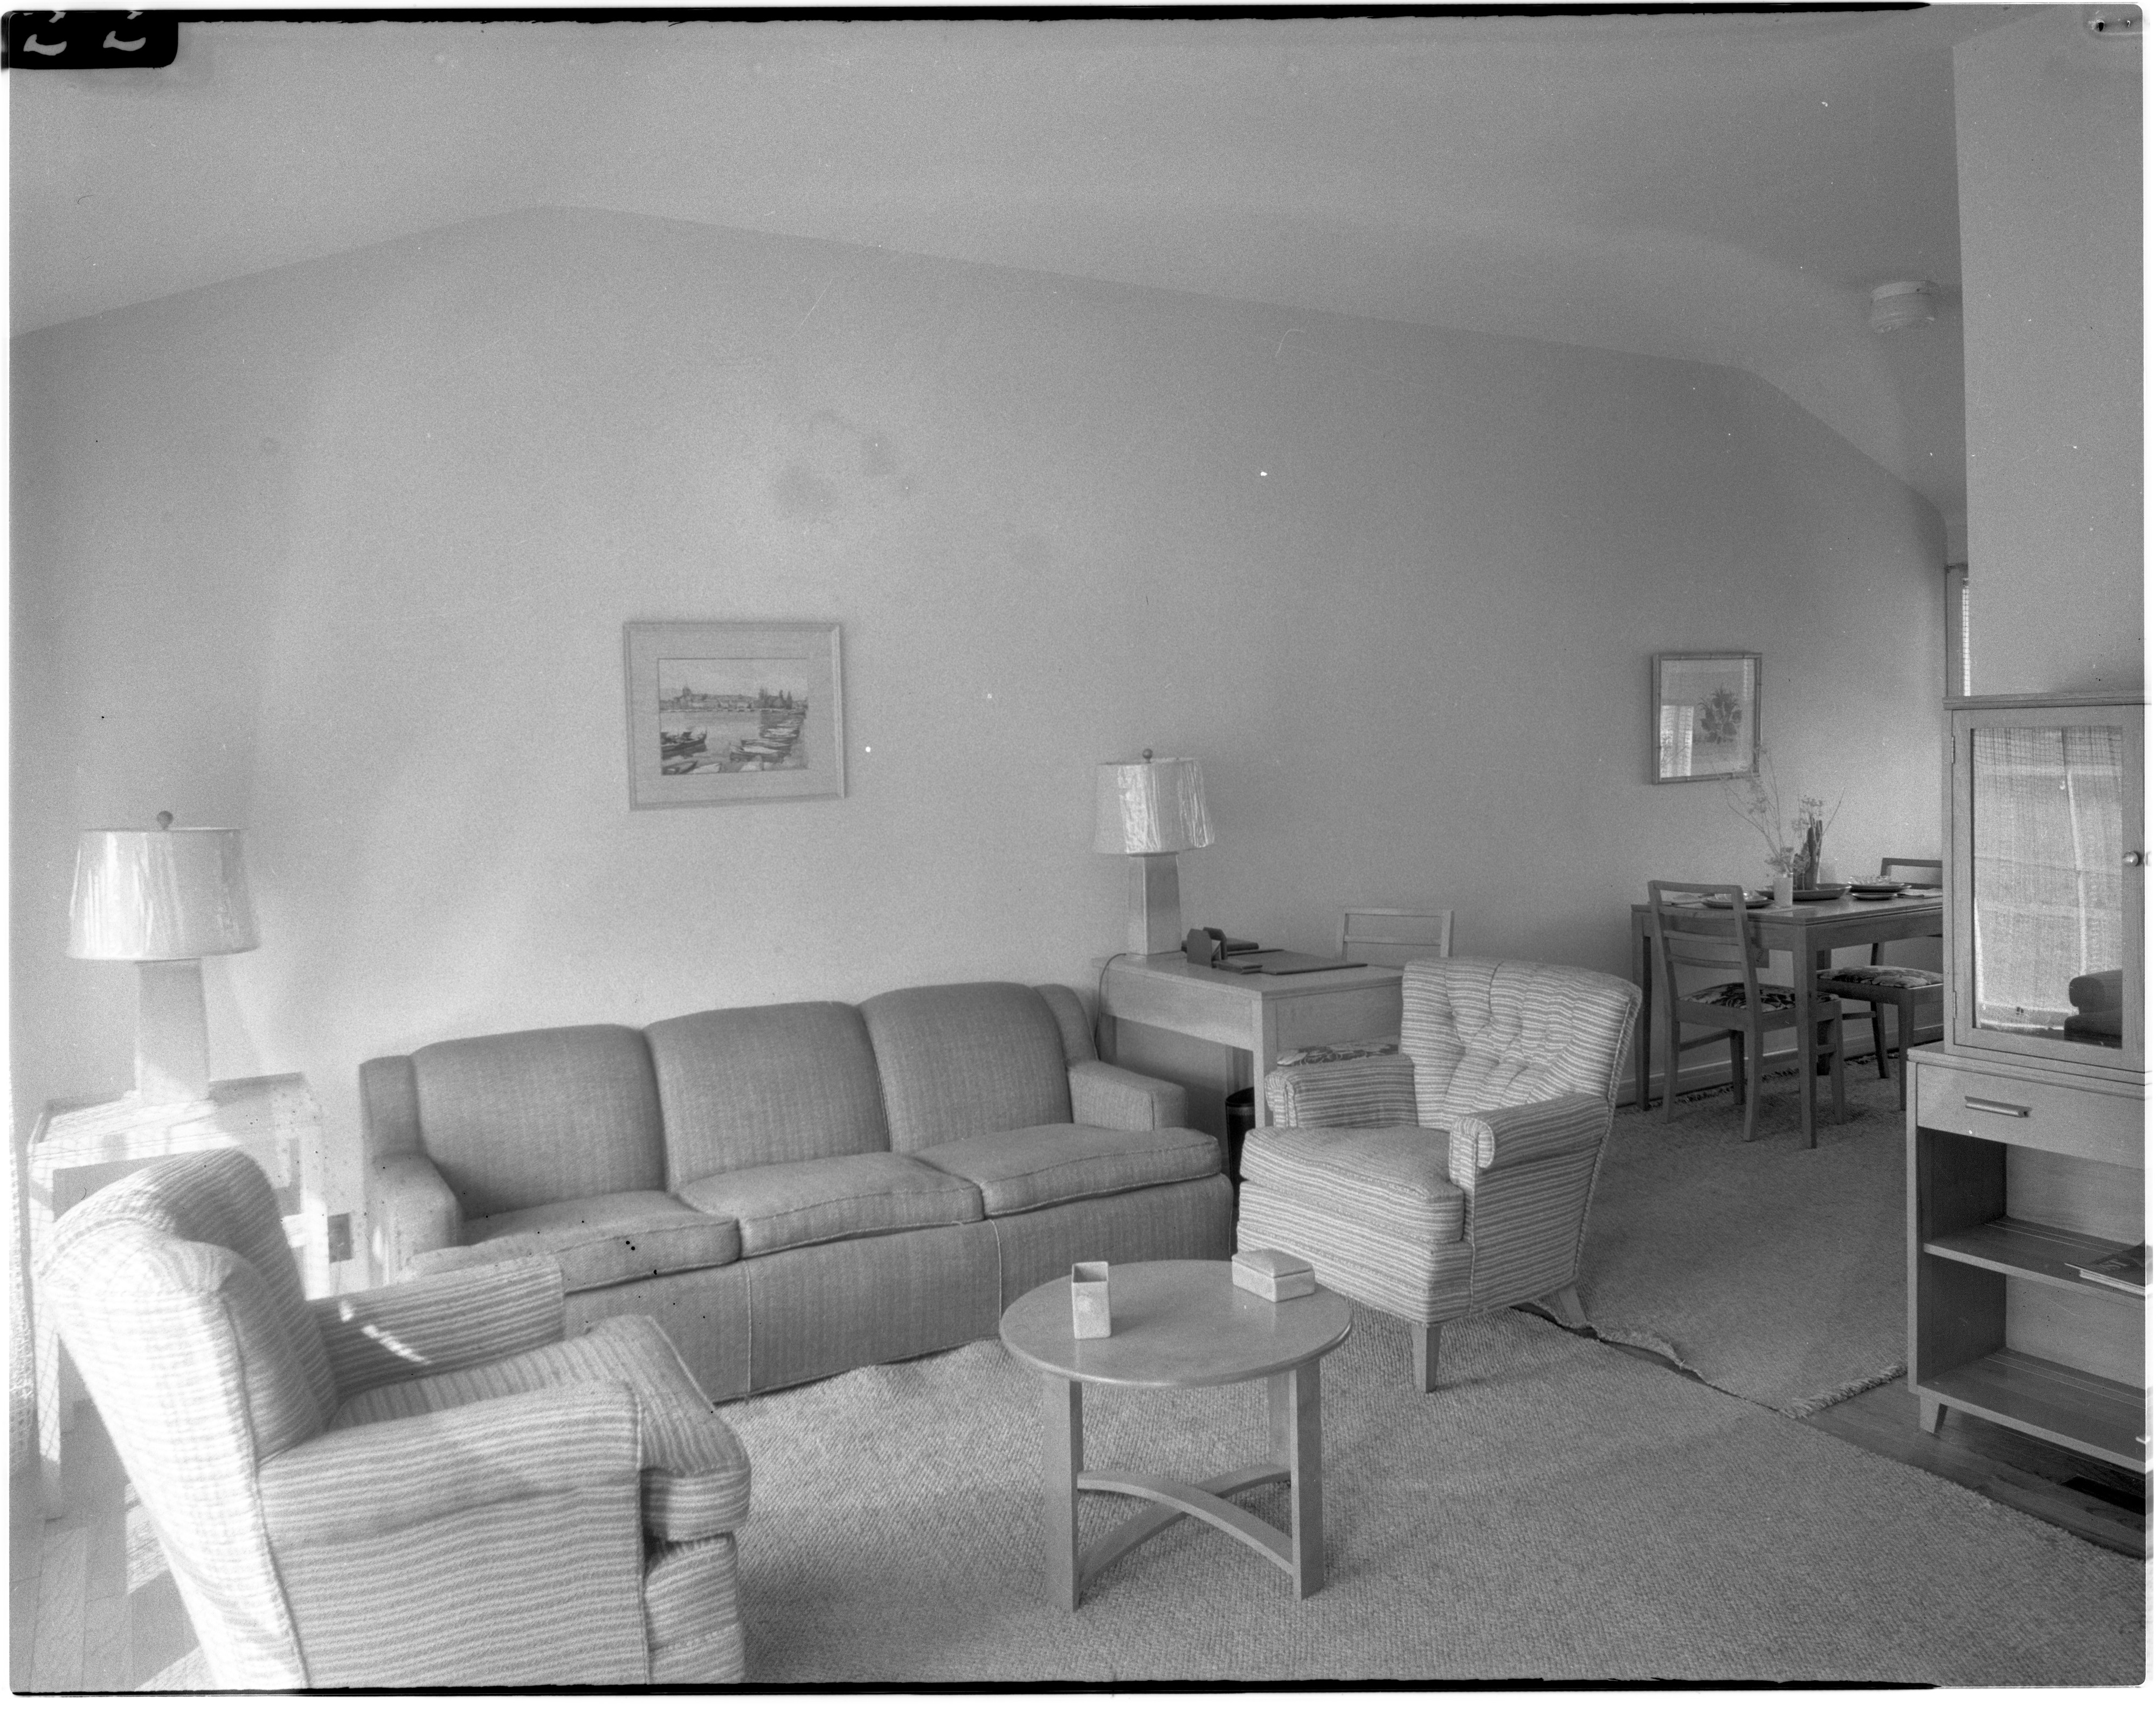 Interior View of a Home in Pittsfield Village, October 1944 image